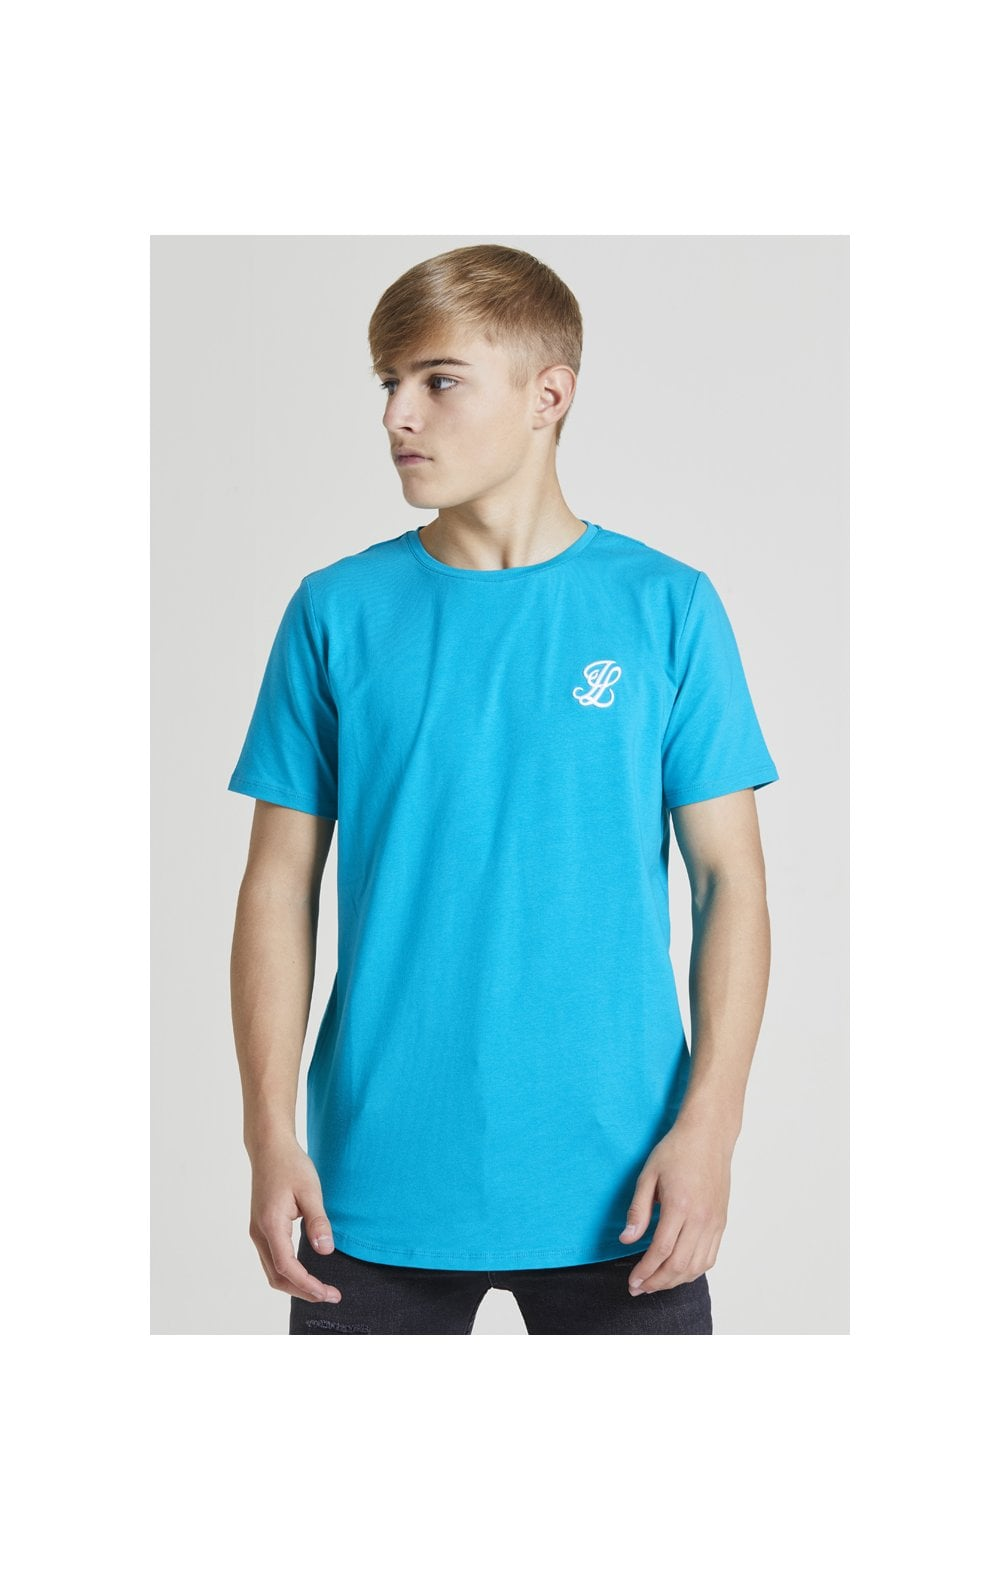 Load image into Gallery viewer, Illusive London Core Tee - Teal Green (1)